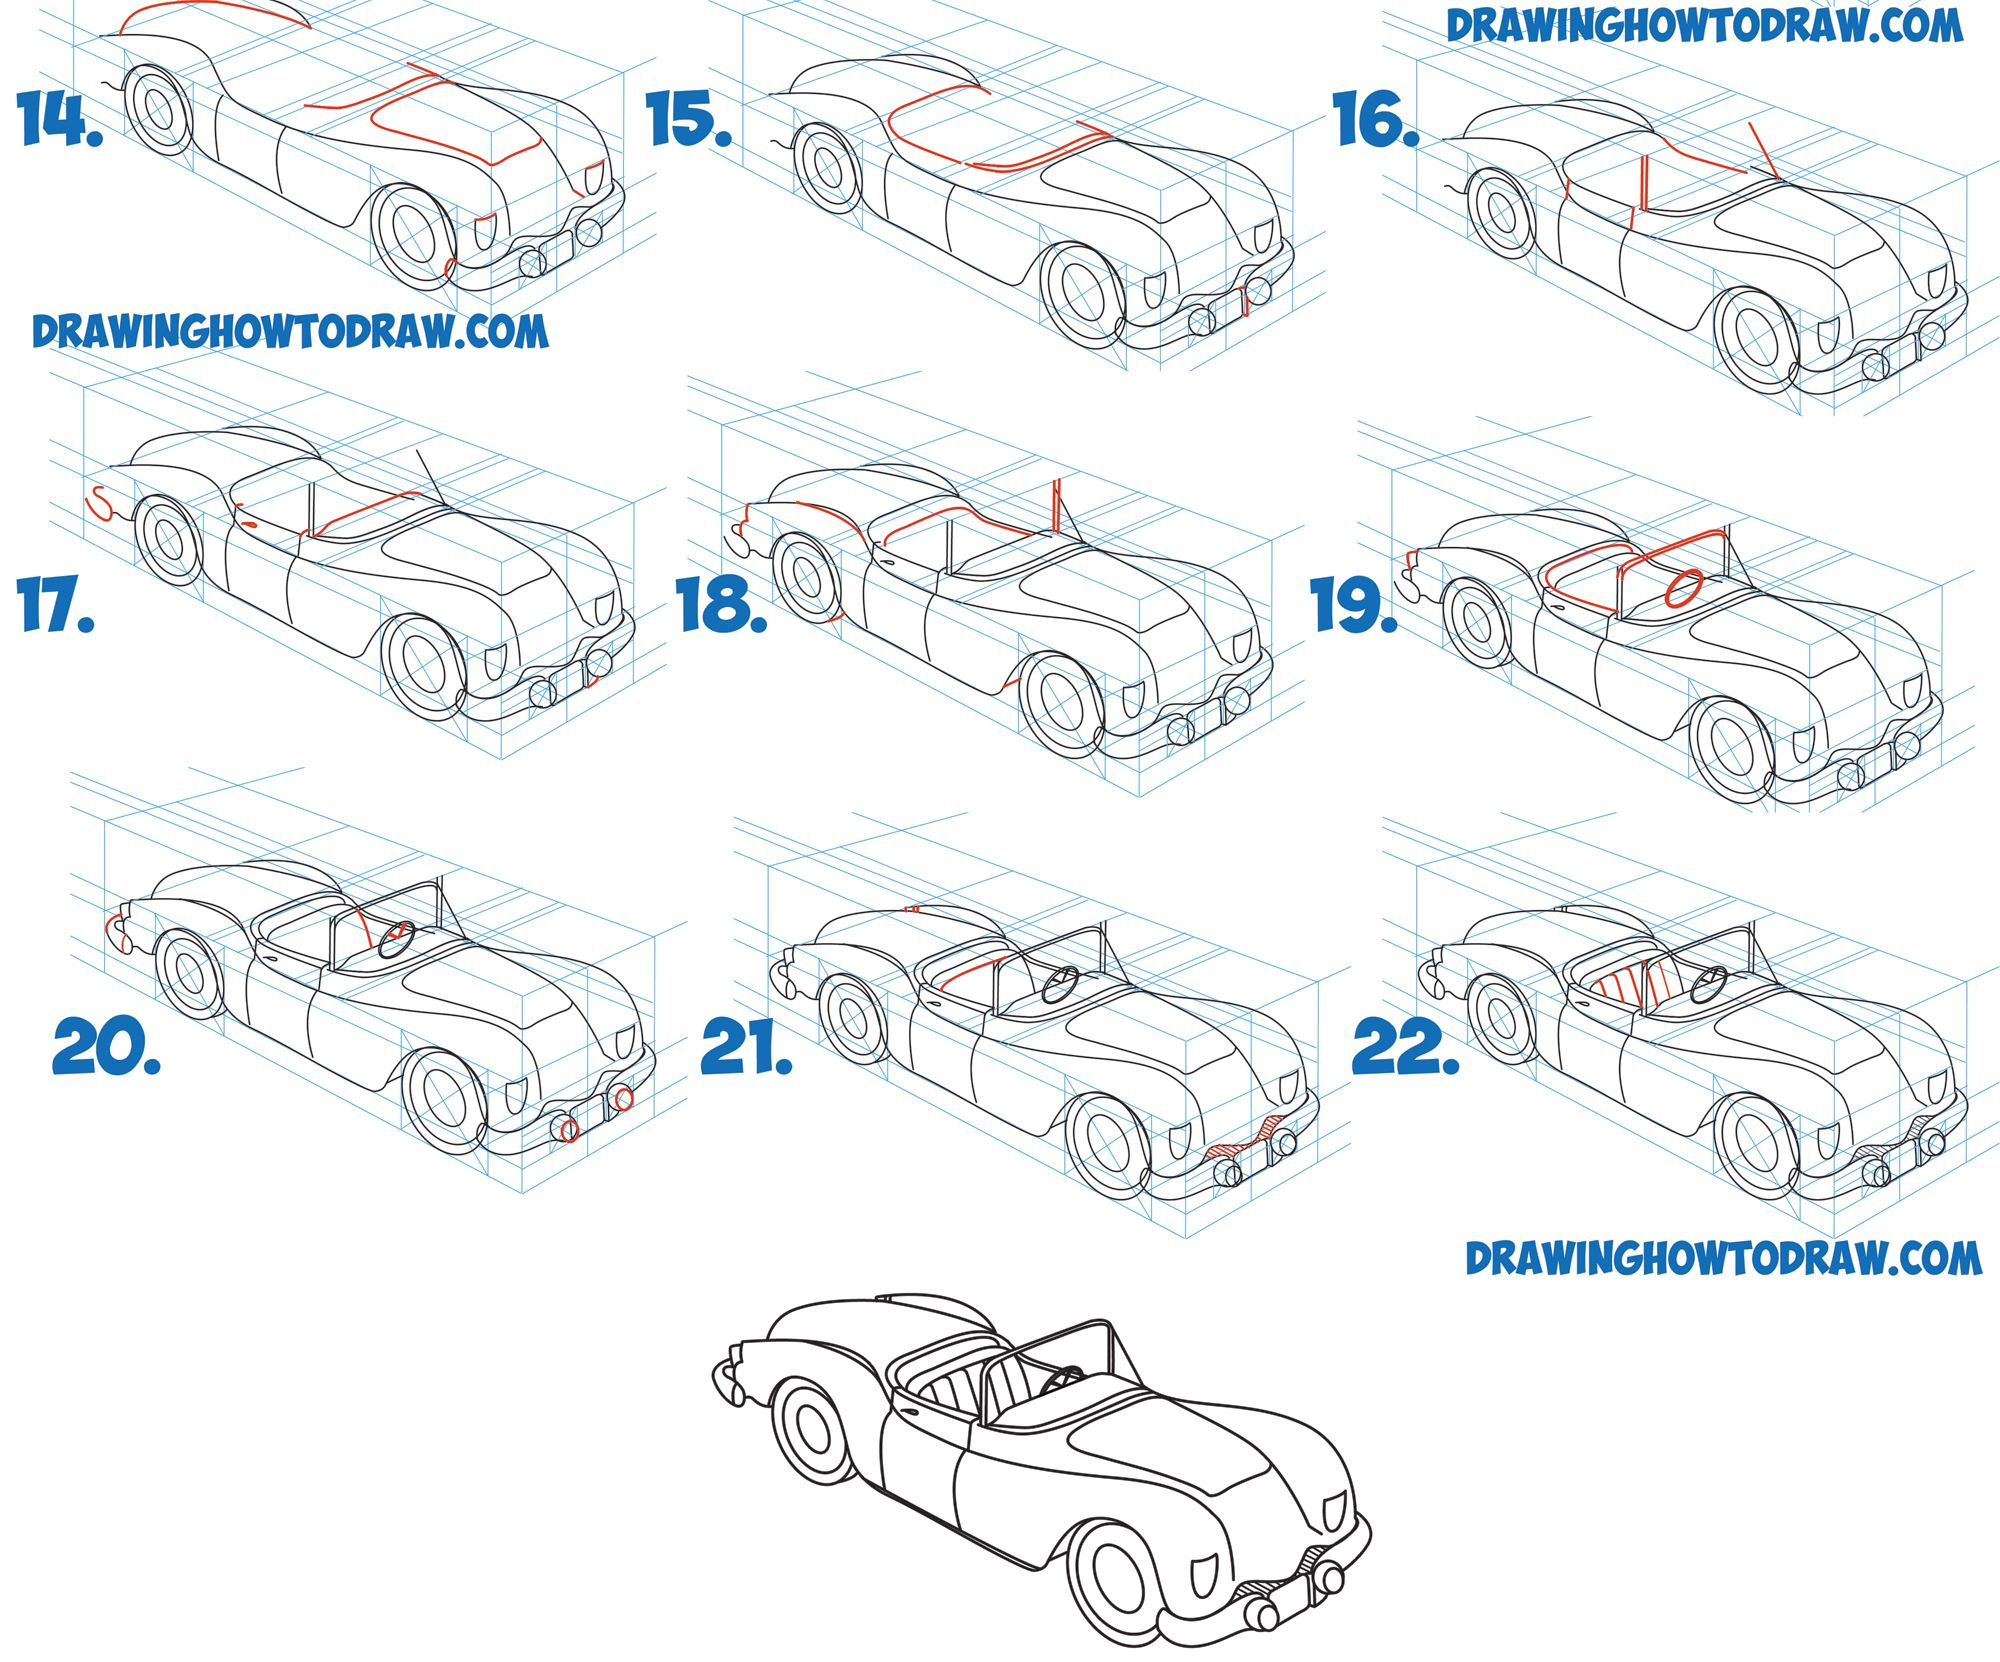 Learn how to draw a car convertible in 2 pt perspective in simple learn how to draw a car convertible in 2 pt perspective in simple steps drawing lesson ccuart Gallery